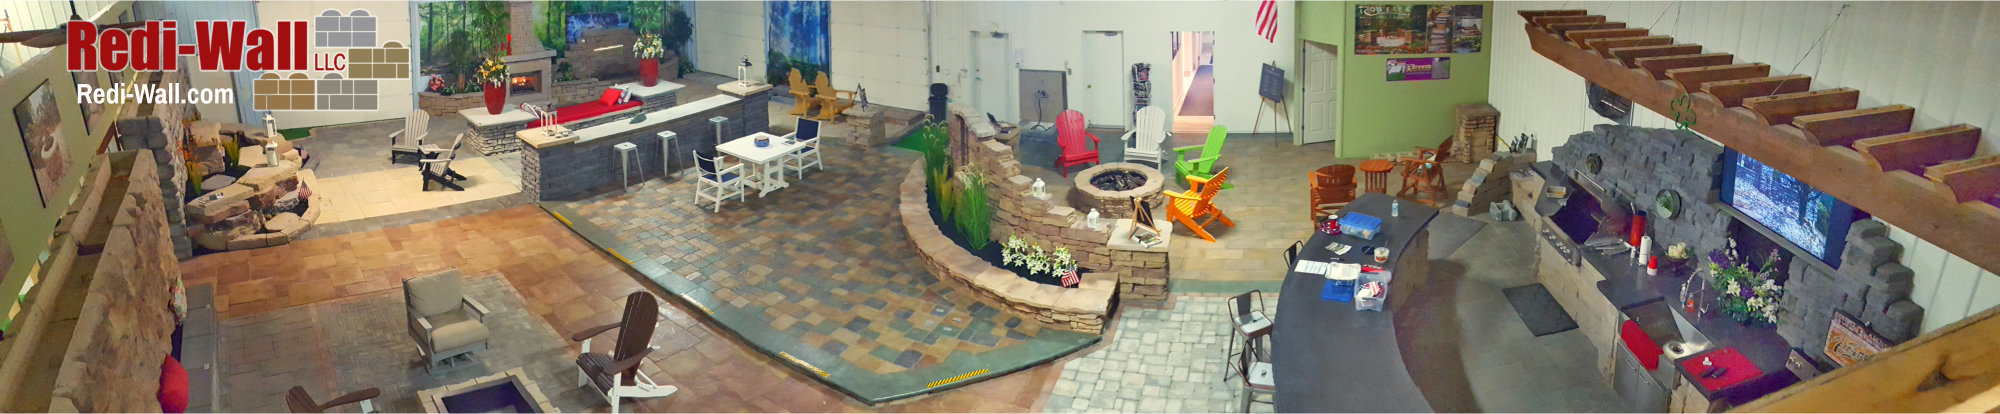 Redi-Wall_Indoor_Hardscape_Design_Center8